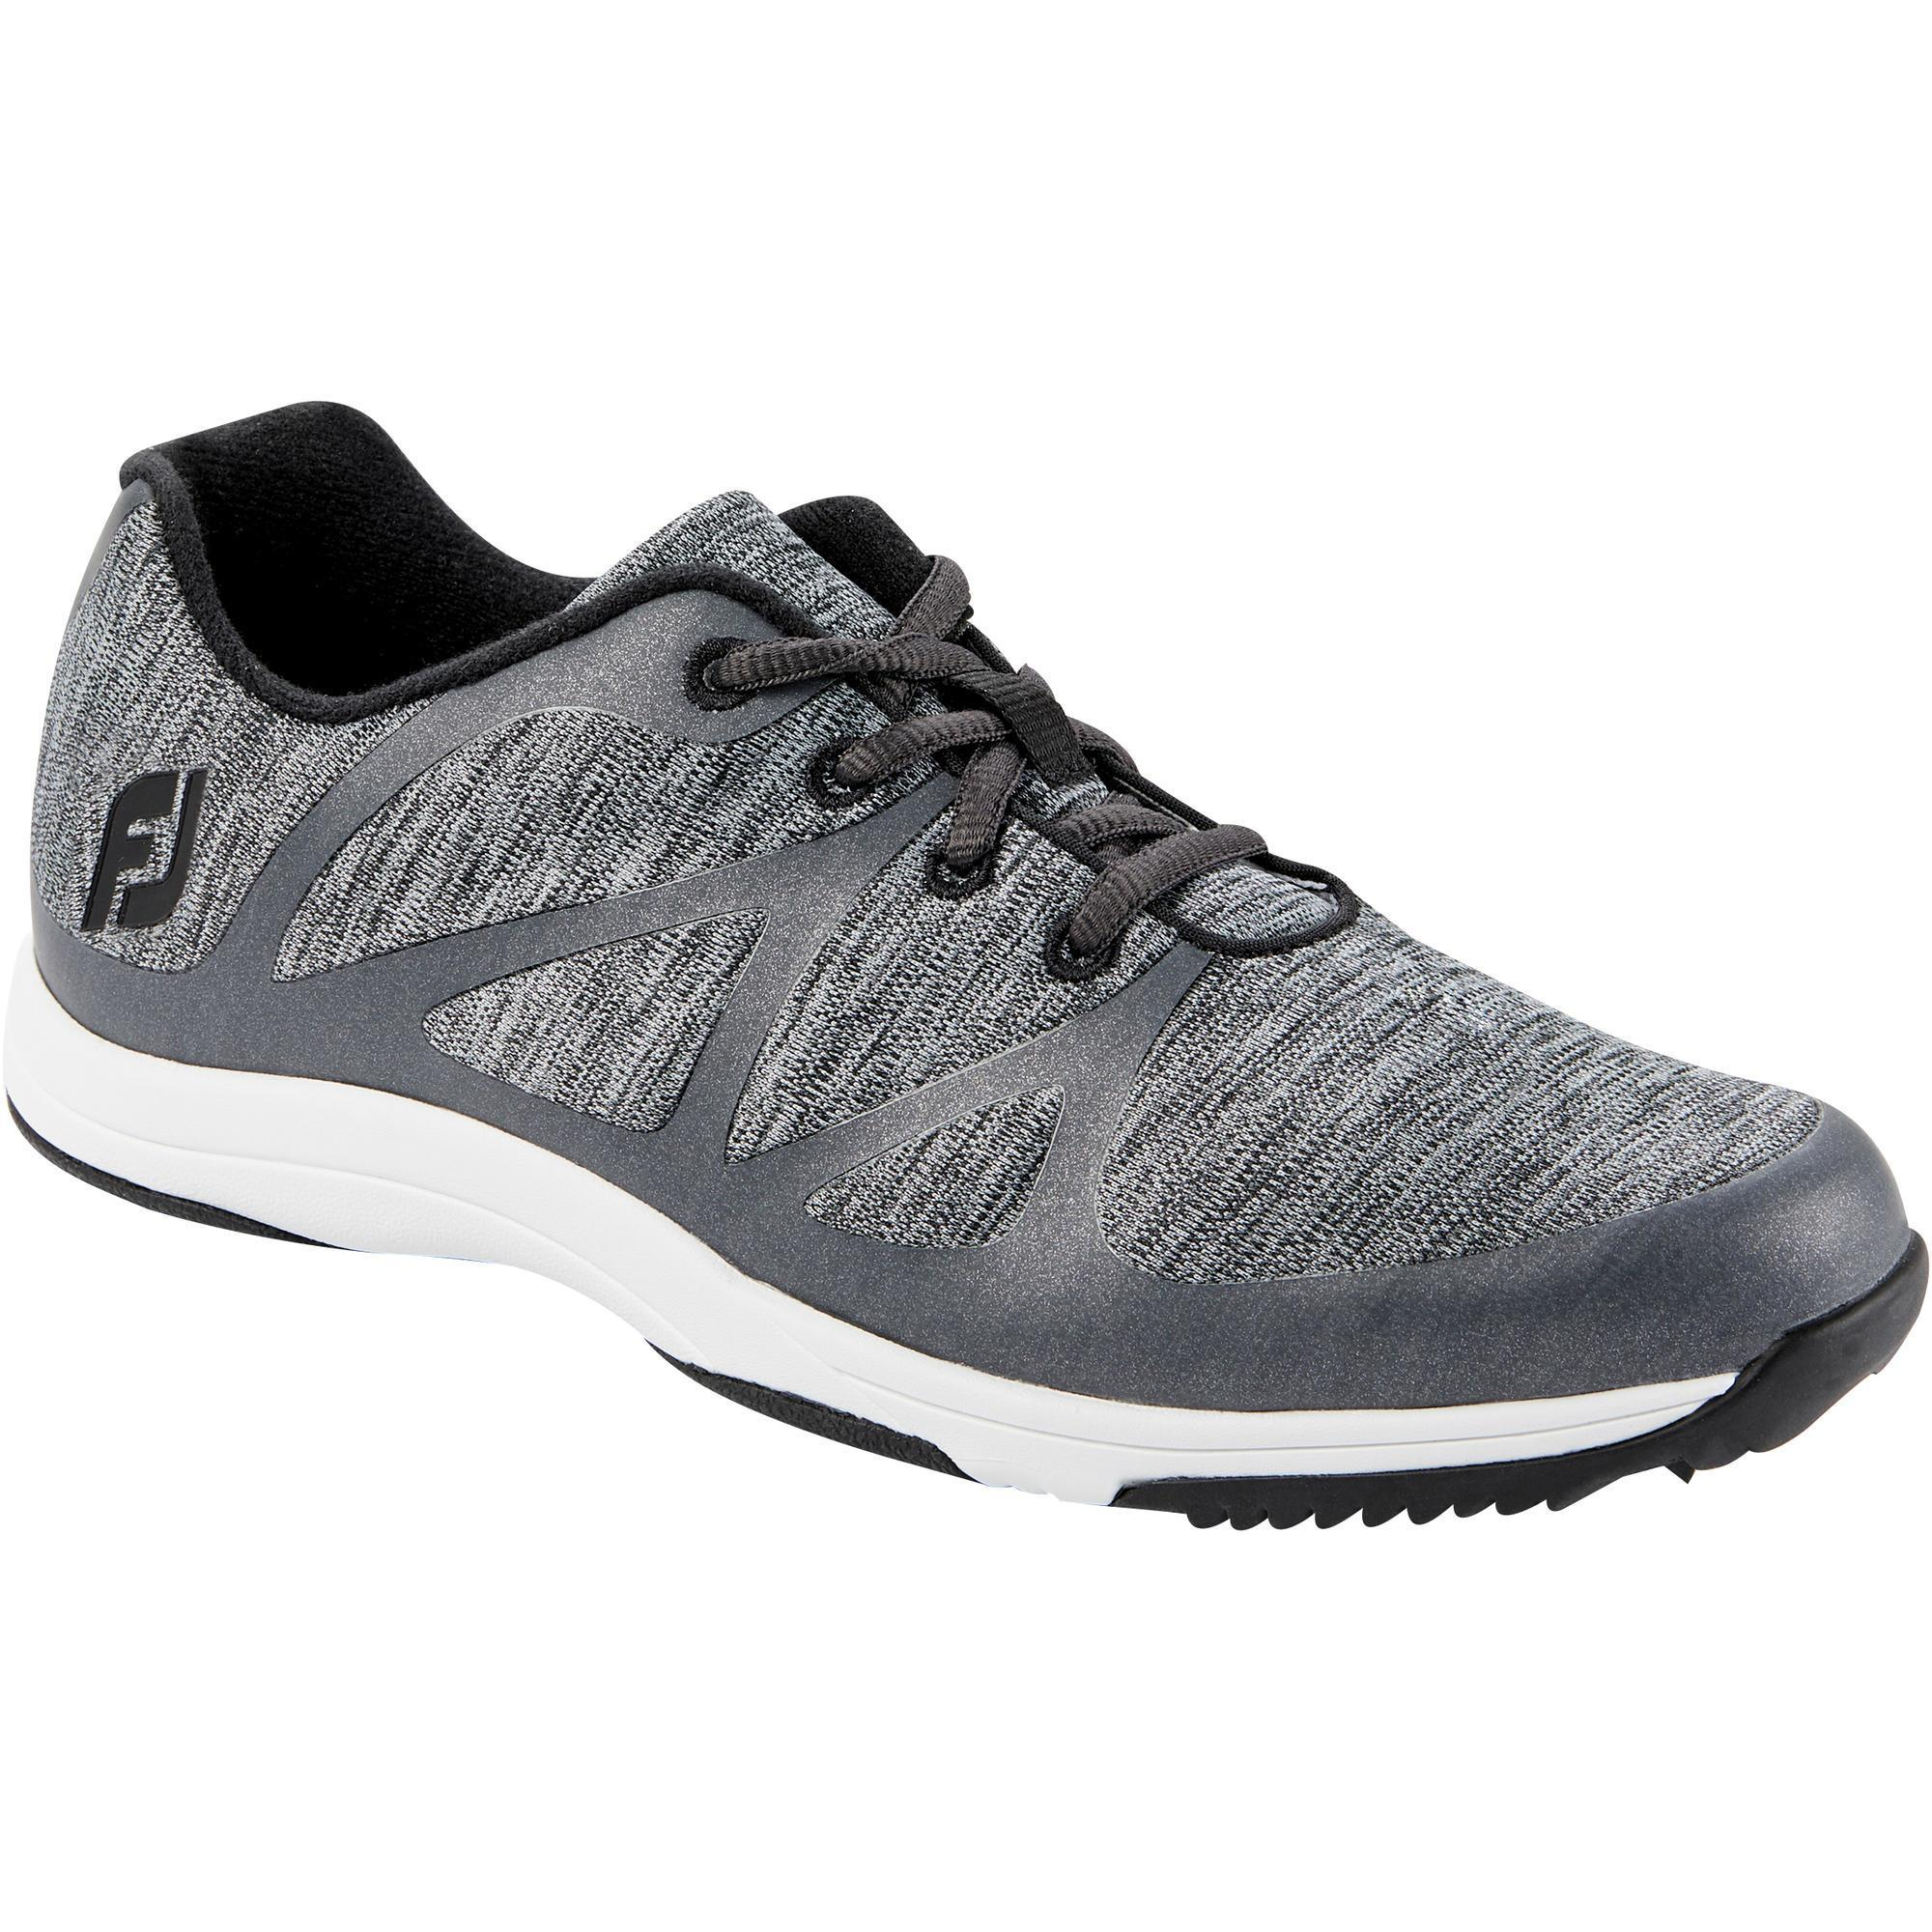 huge discount af6fb 7a207 Comprar zapatos y zapatillas de golf online   Decathlon